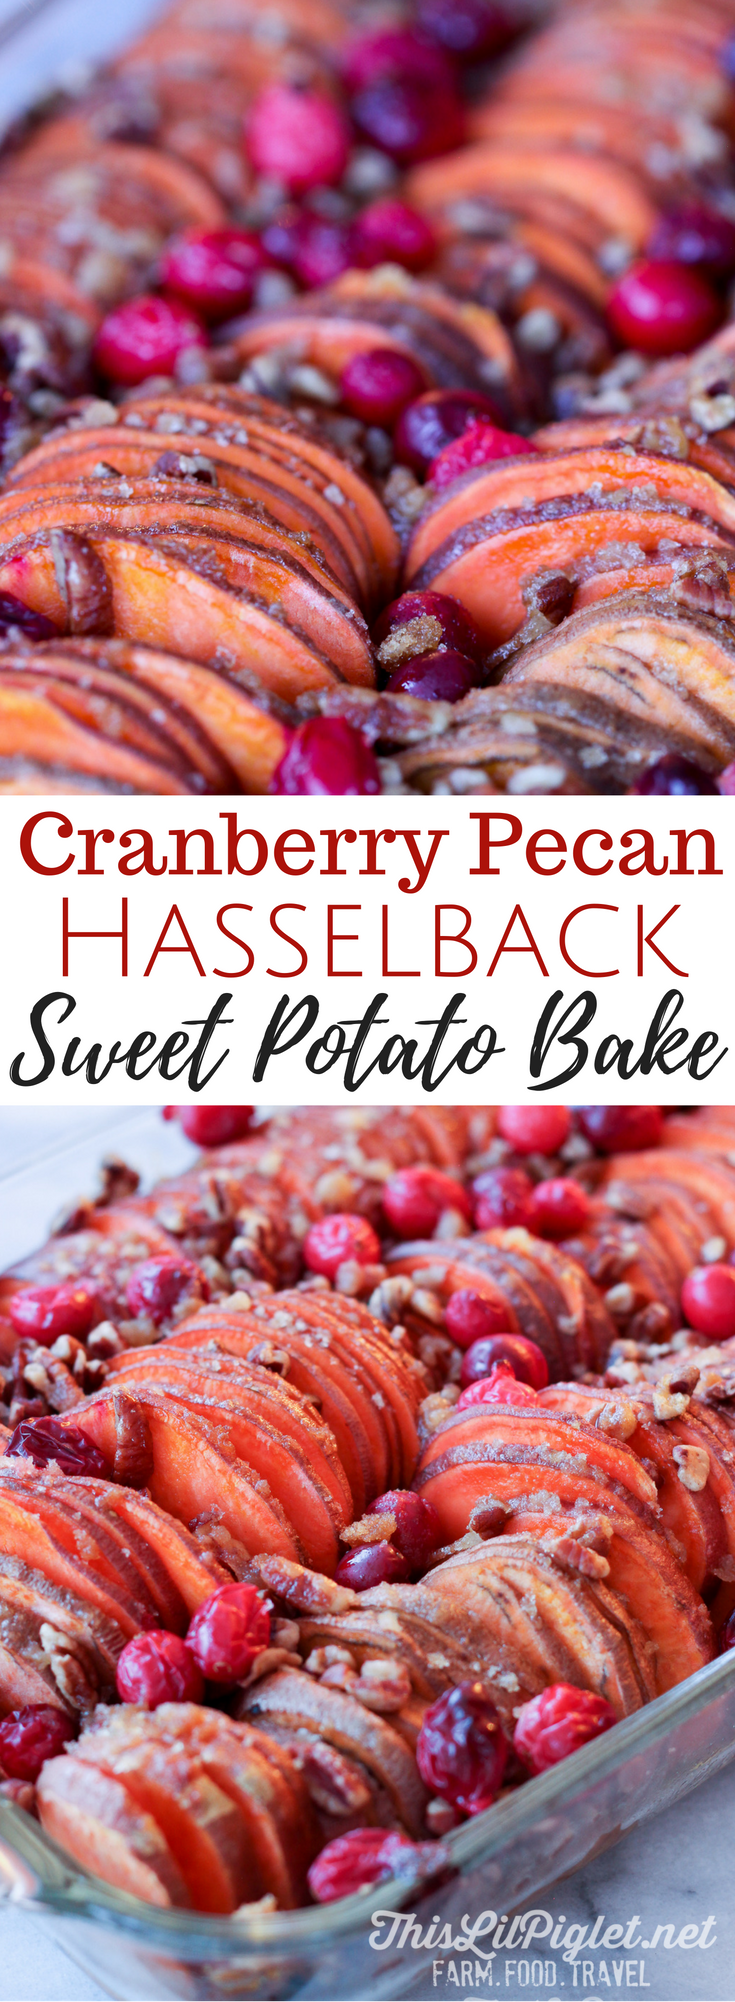 Cranberry Pecan Hasselback Sweet Potato Bake // via @thislilpiglet